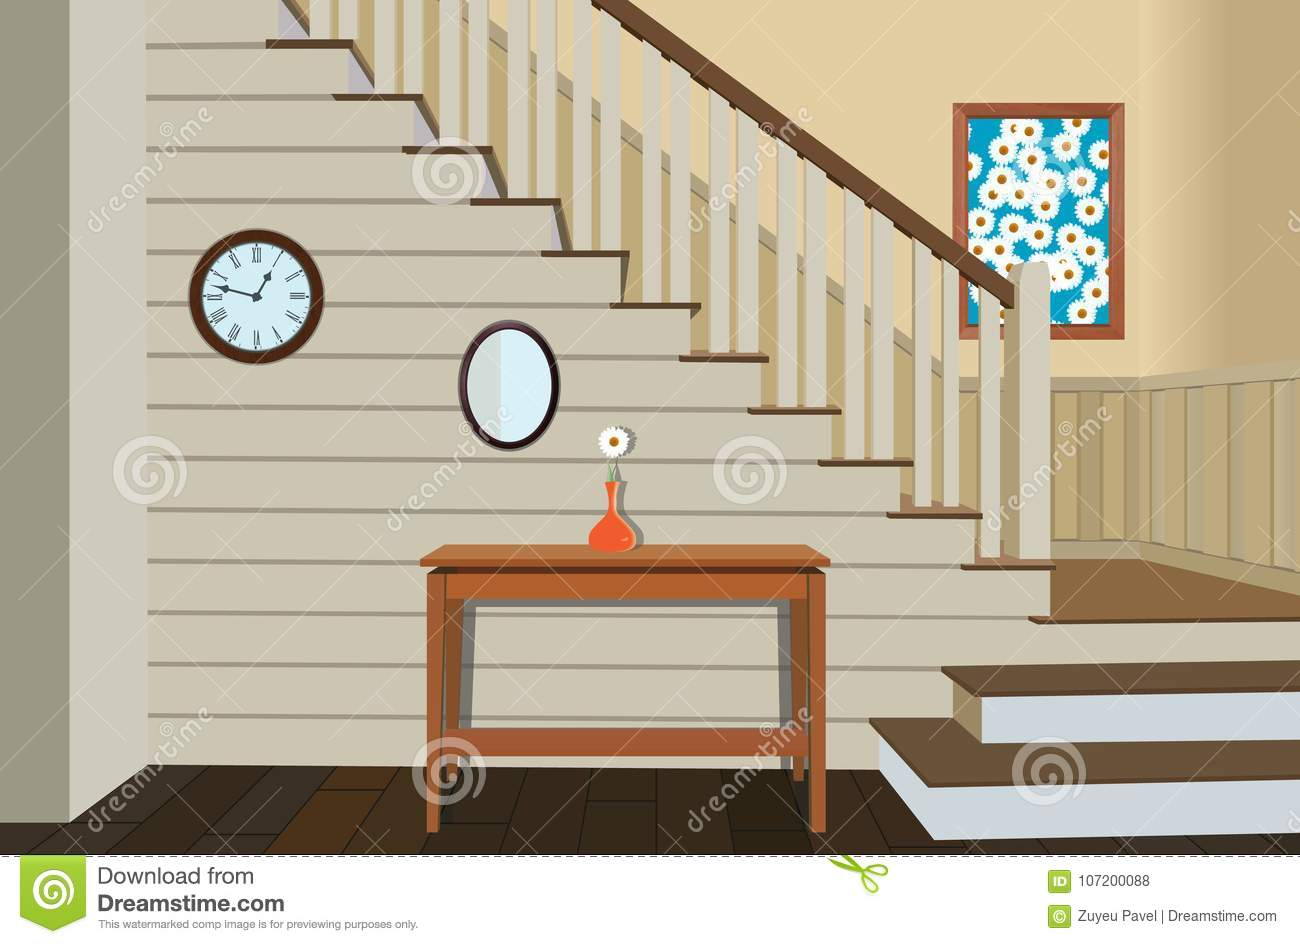 Vintage Interior Of The Hallway With A Staircase Stock Vector